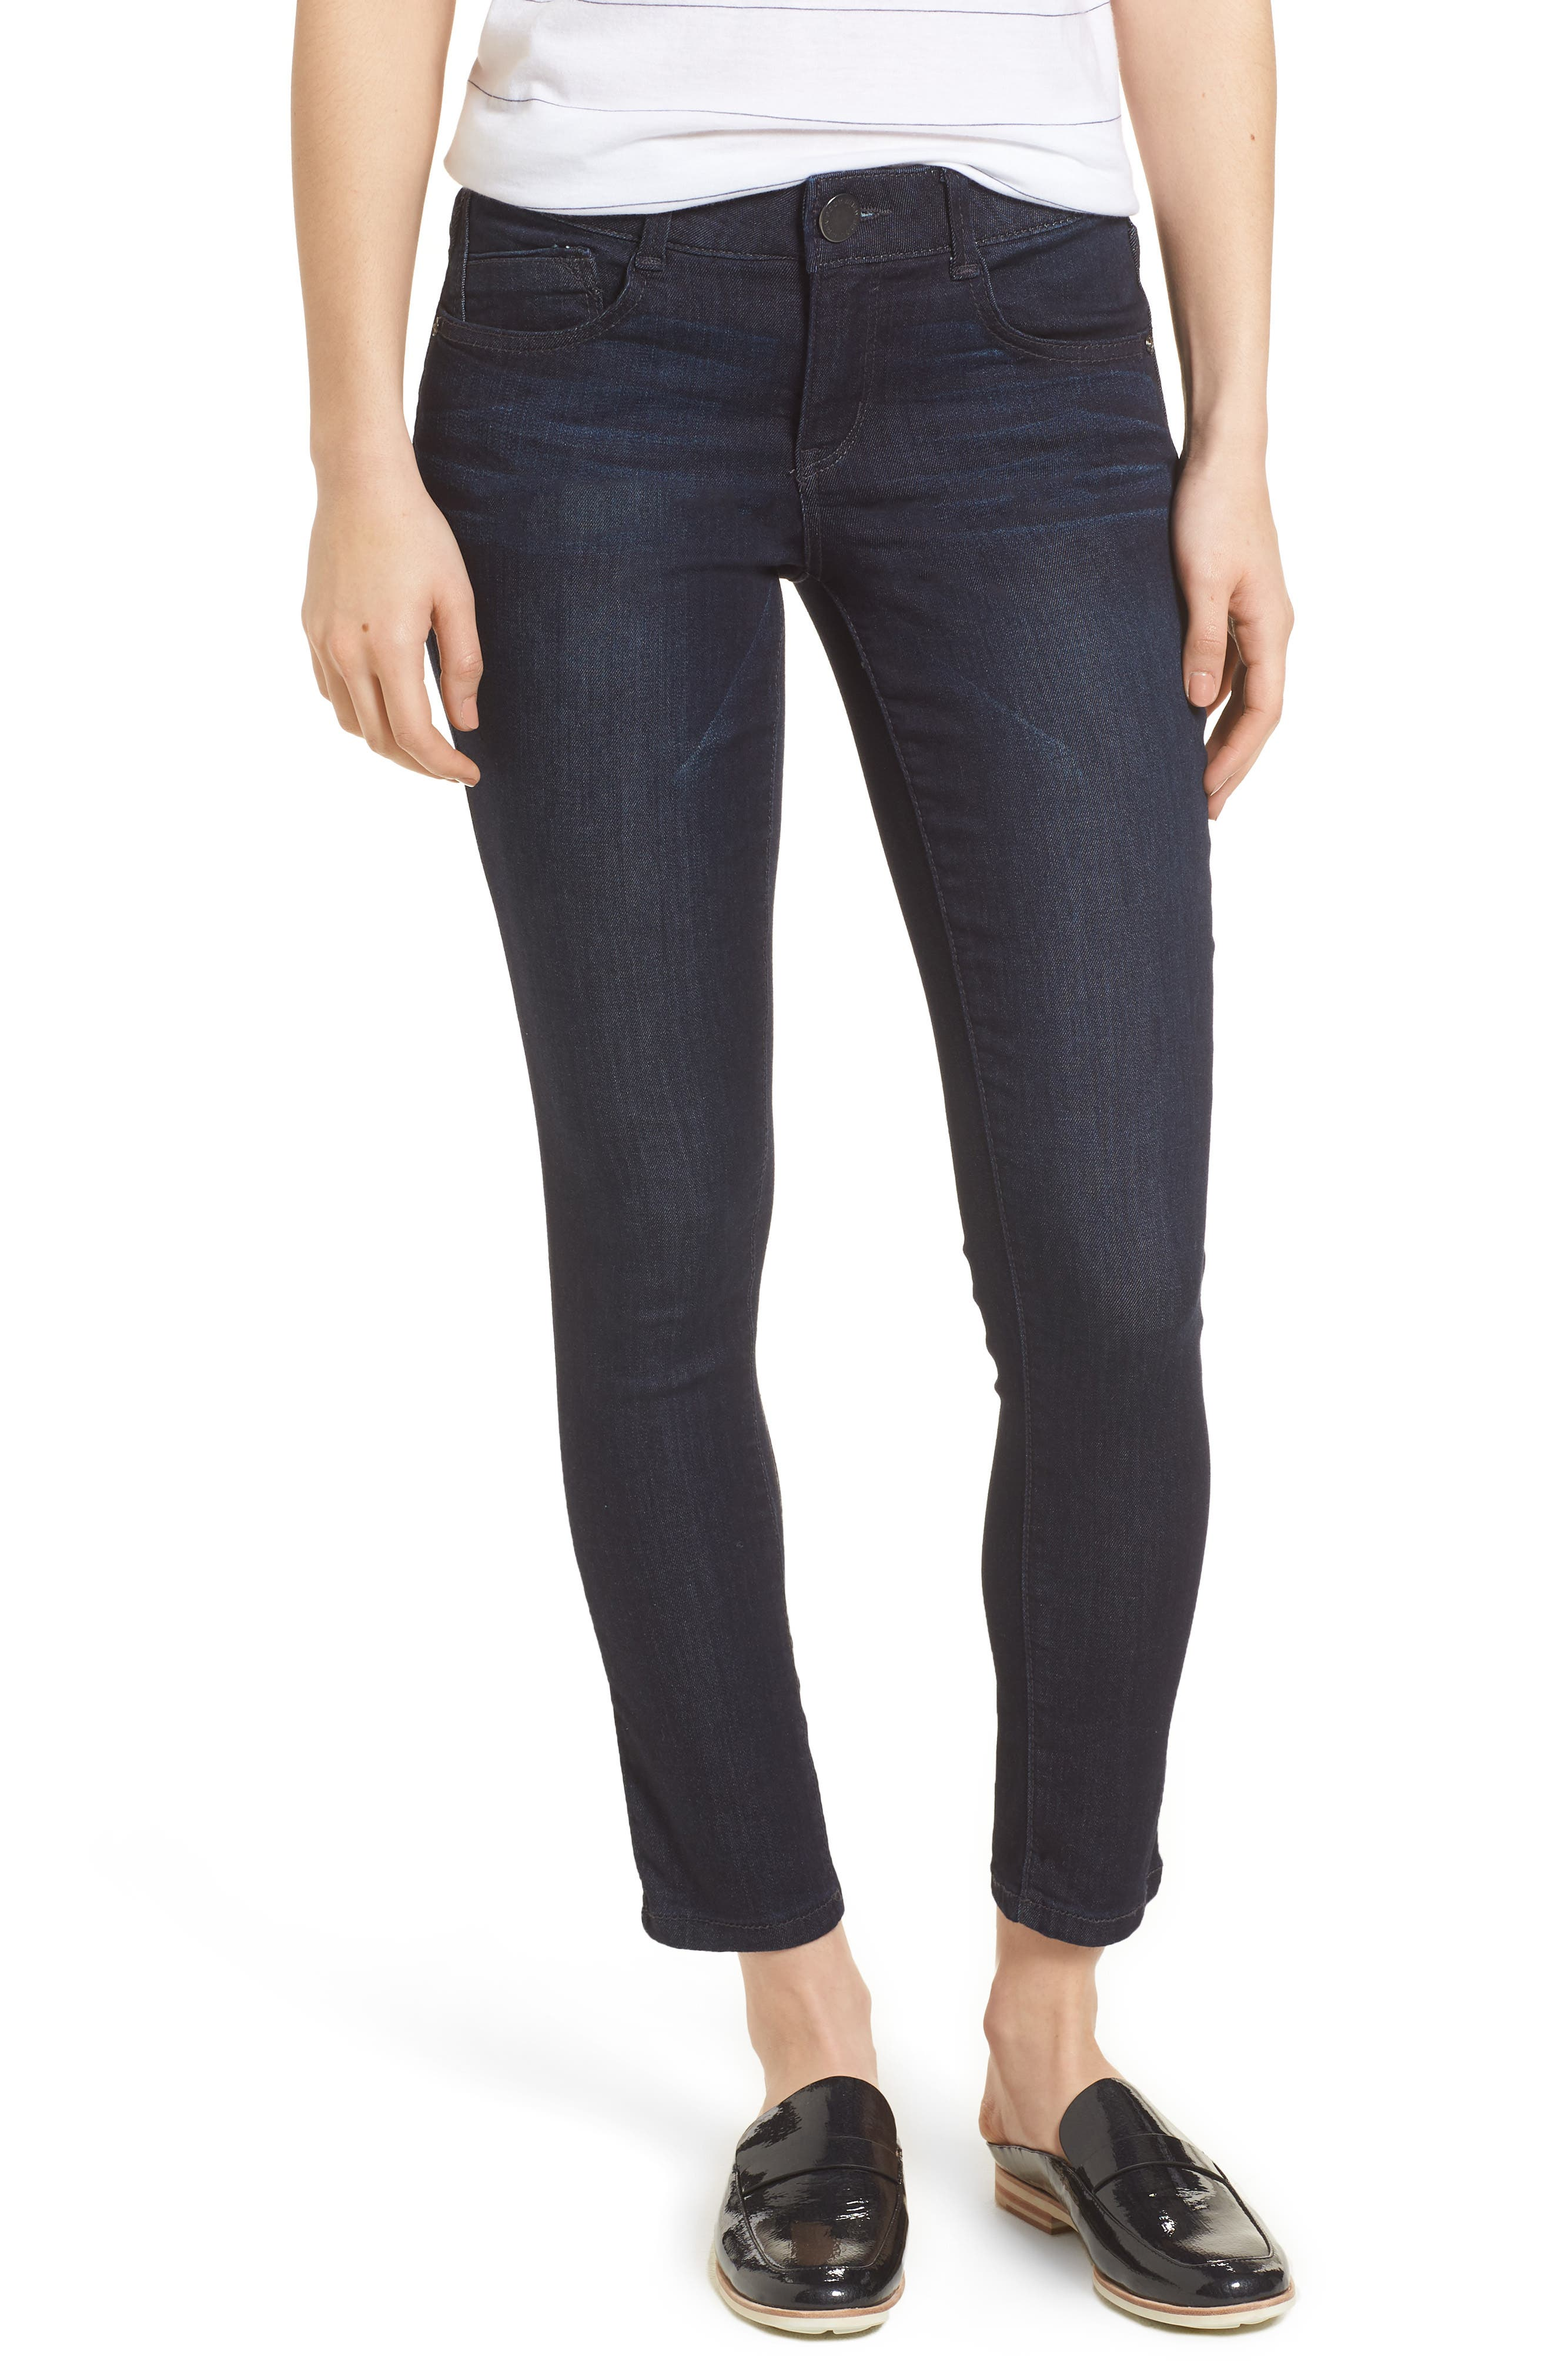 Ab-solution Ankle Skimmer Jeans,                             Main thumbnail 1, color,                             In- Indigo